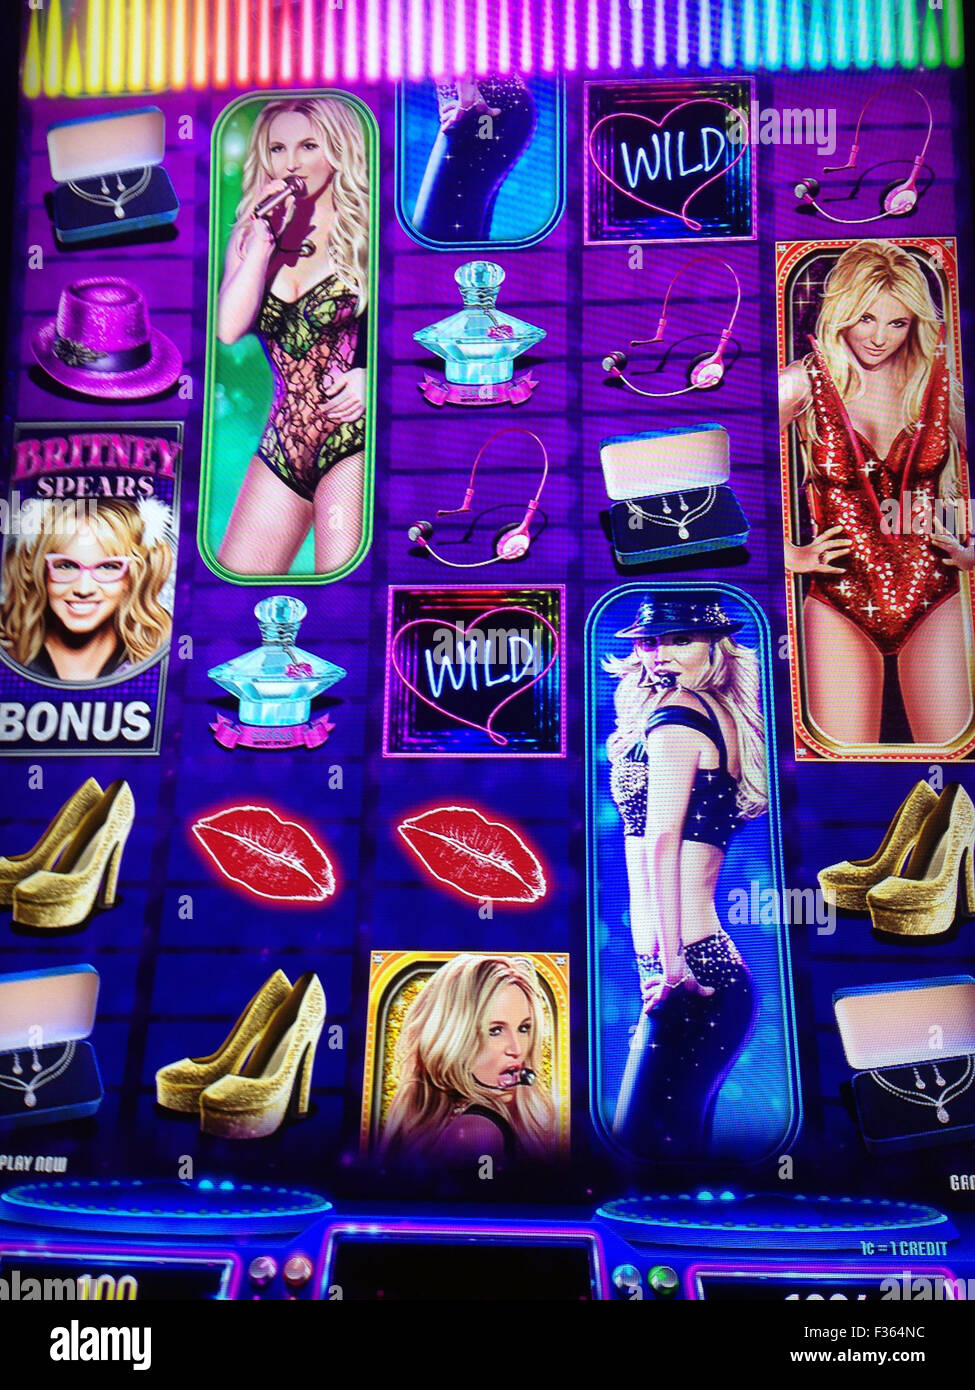 Britney spears slot machine online tim west poker twitter